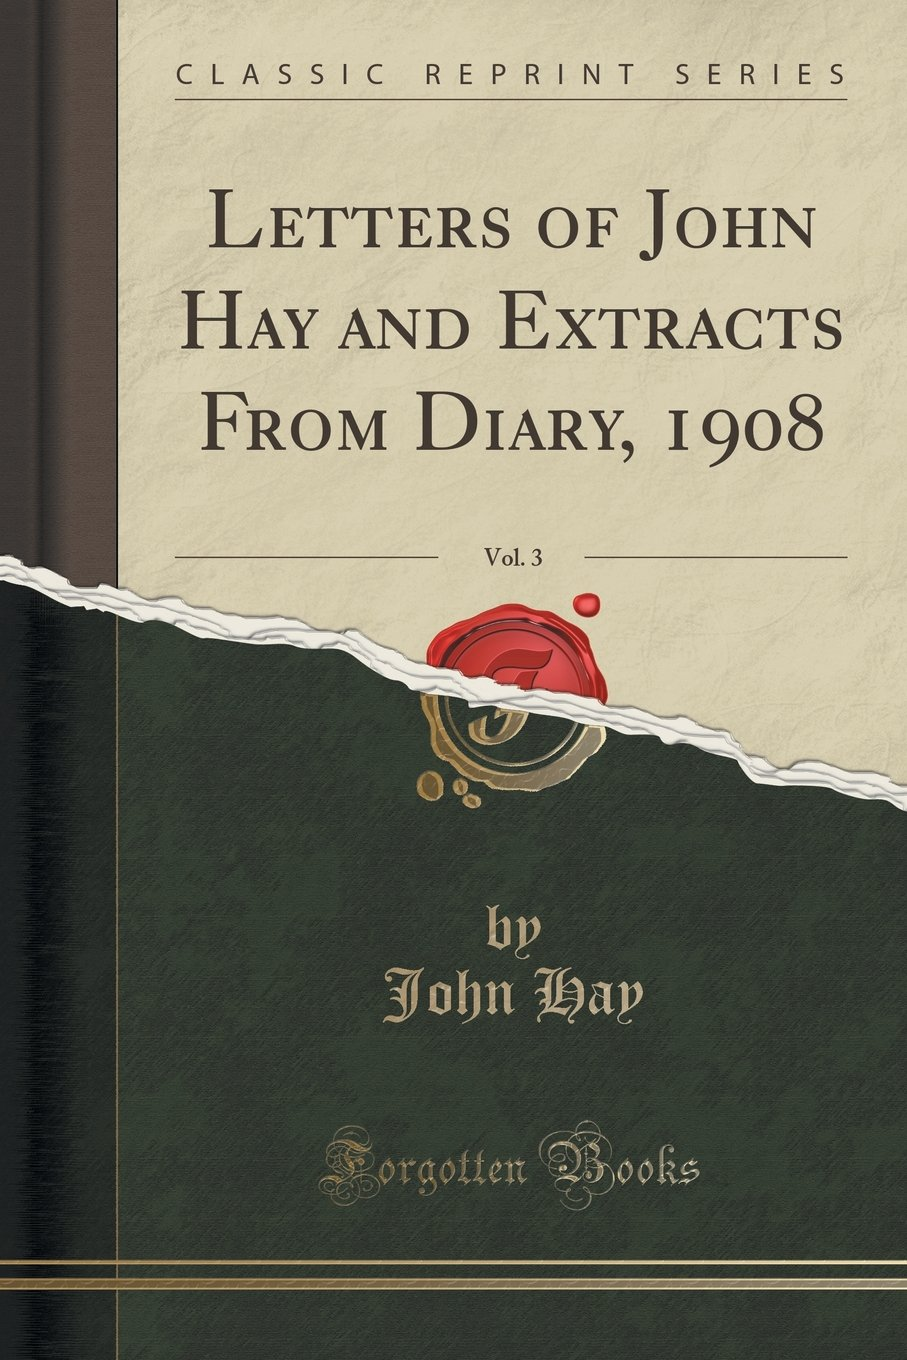 Letters of John Hay and Extracts From Diary, 1908, Vol. 3 (Classic Reprint) PDF